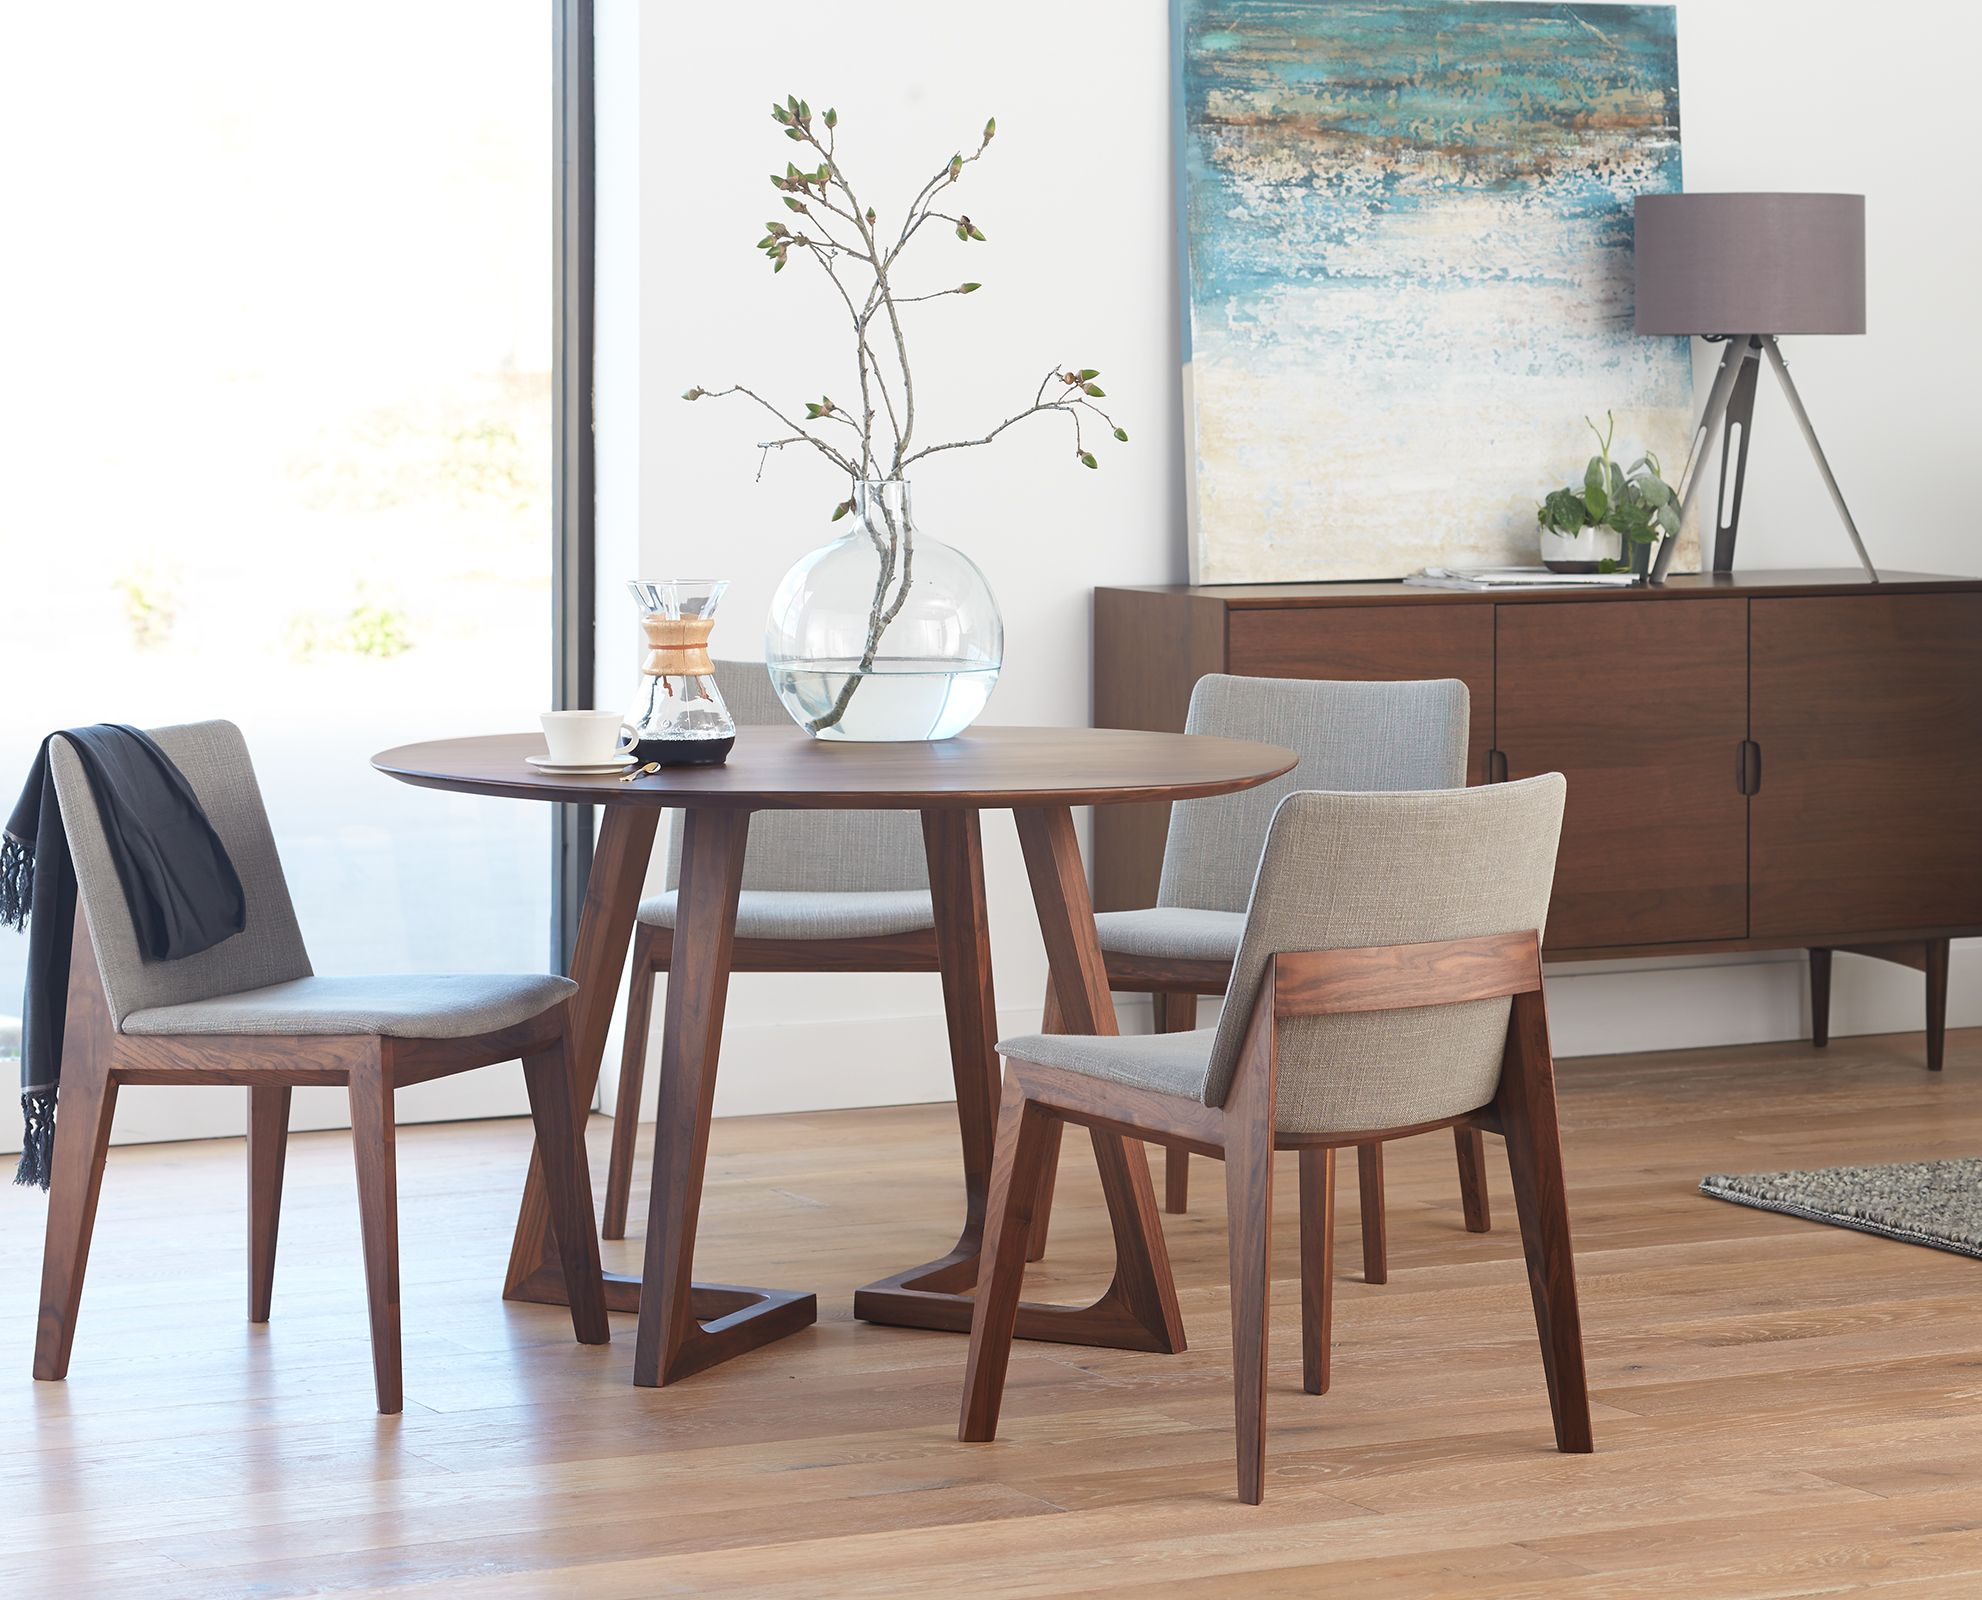 Round table and chairs from Dania & Round table and chairs from Dania | Condo | Modern dining table ...